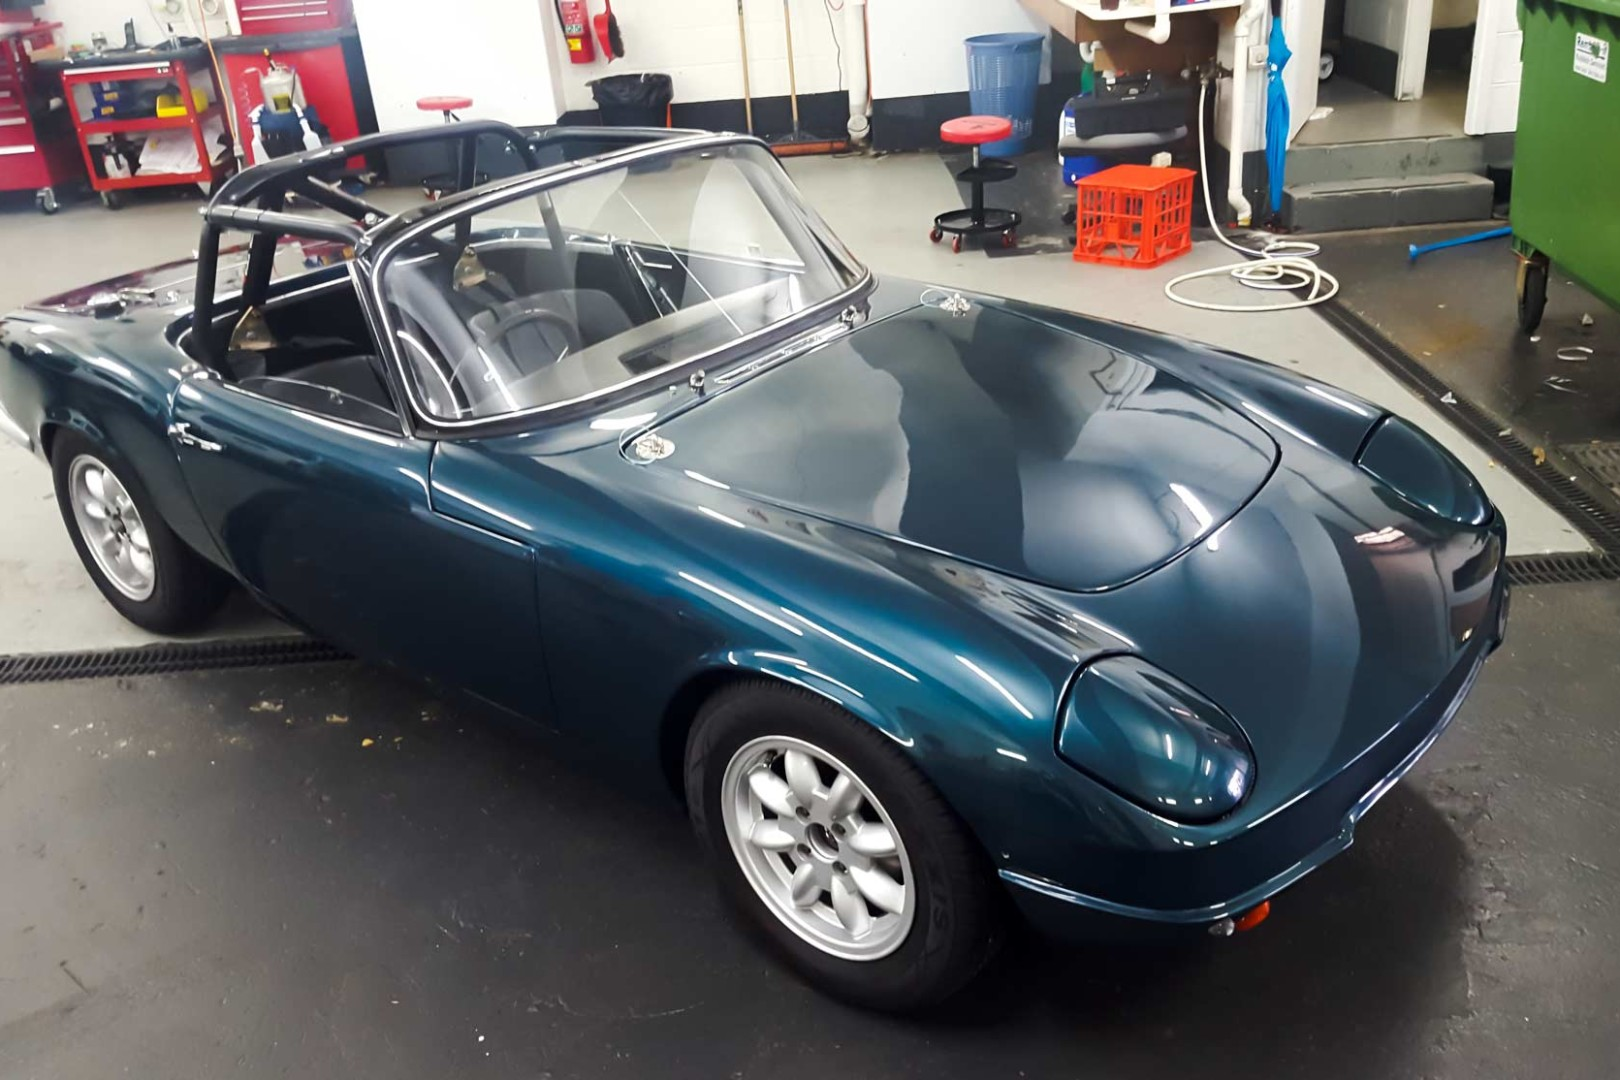 This 1964 Lotus Elan circuit racer has has the entire front end wrapped including headlights, lower fender, guards, and bonnet, to preserve its paint, and delicate fibreglass shell.